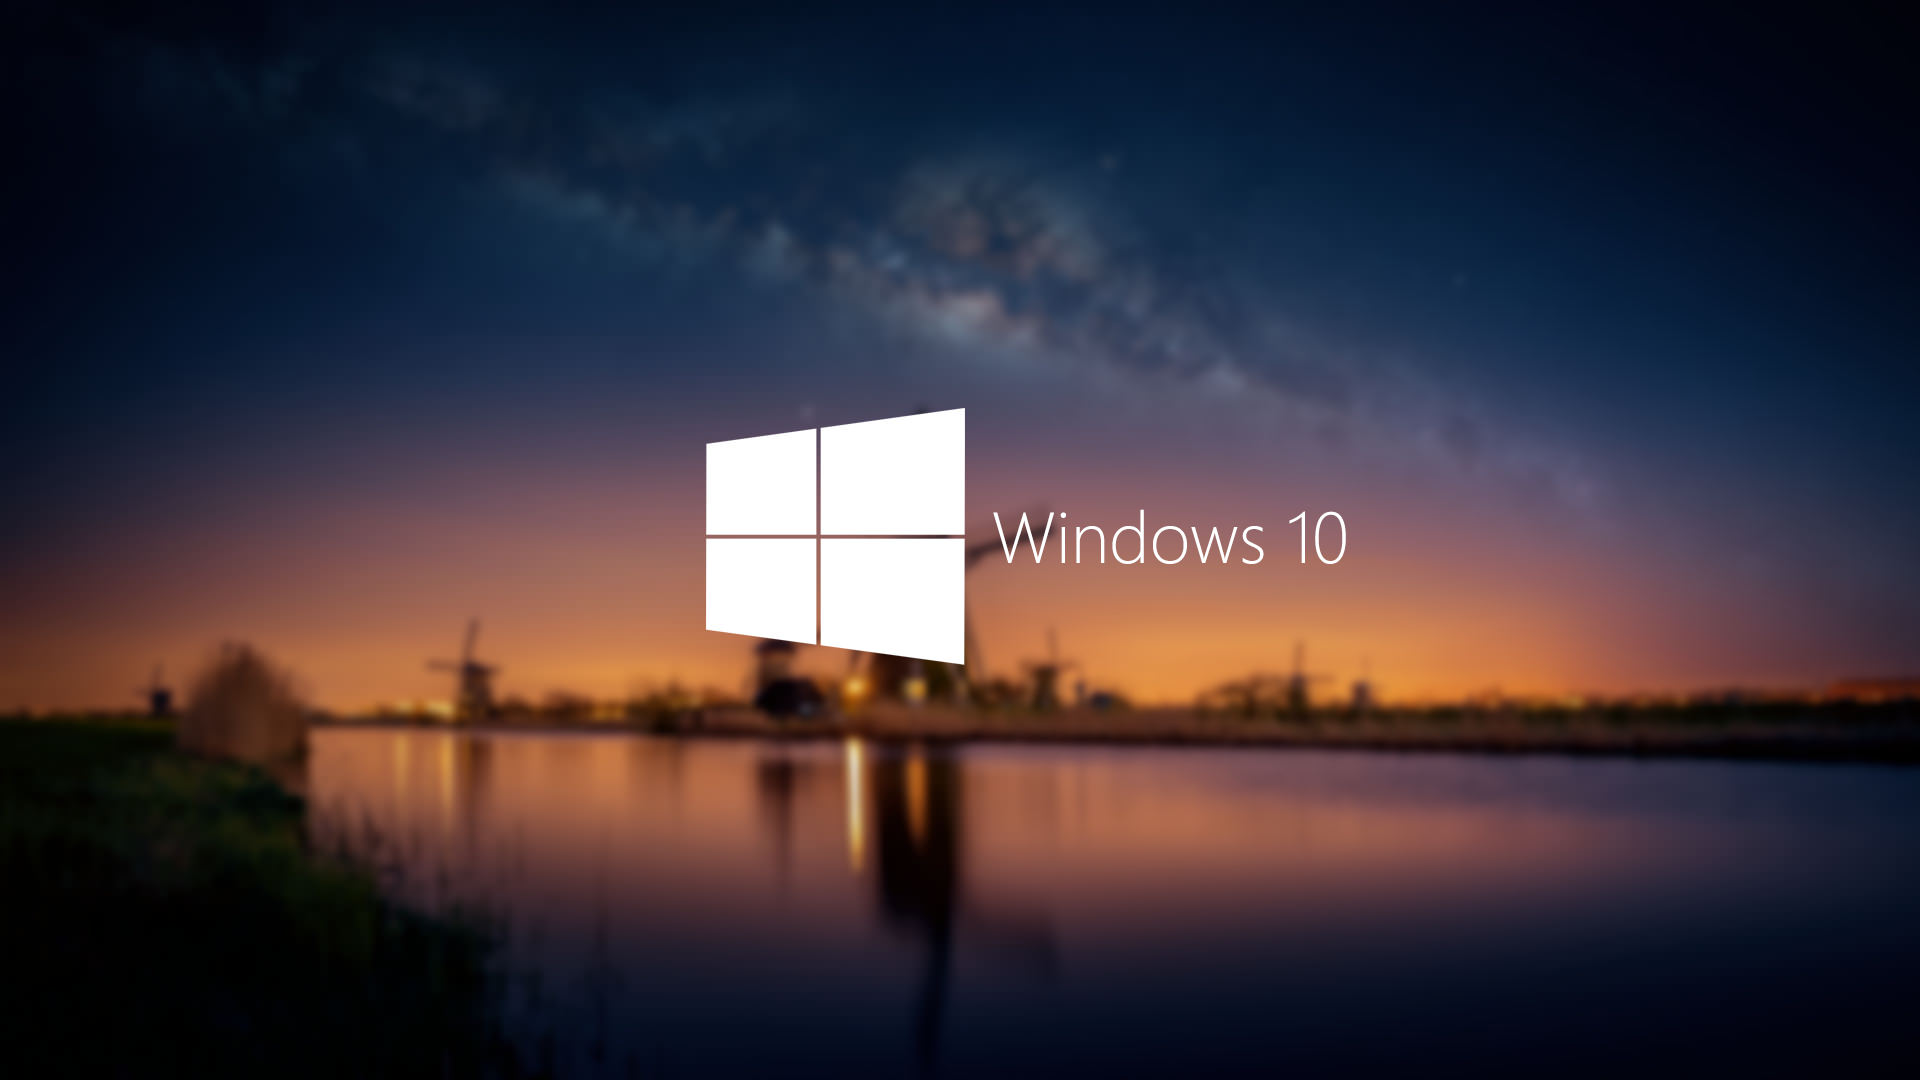 High Resolution Windows 10 Wallpaper